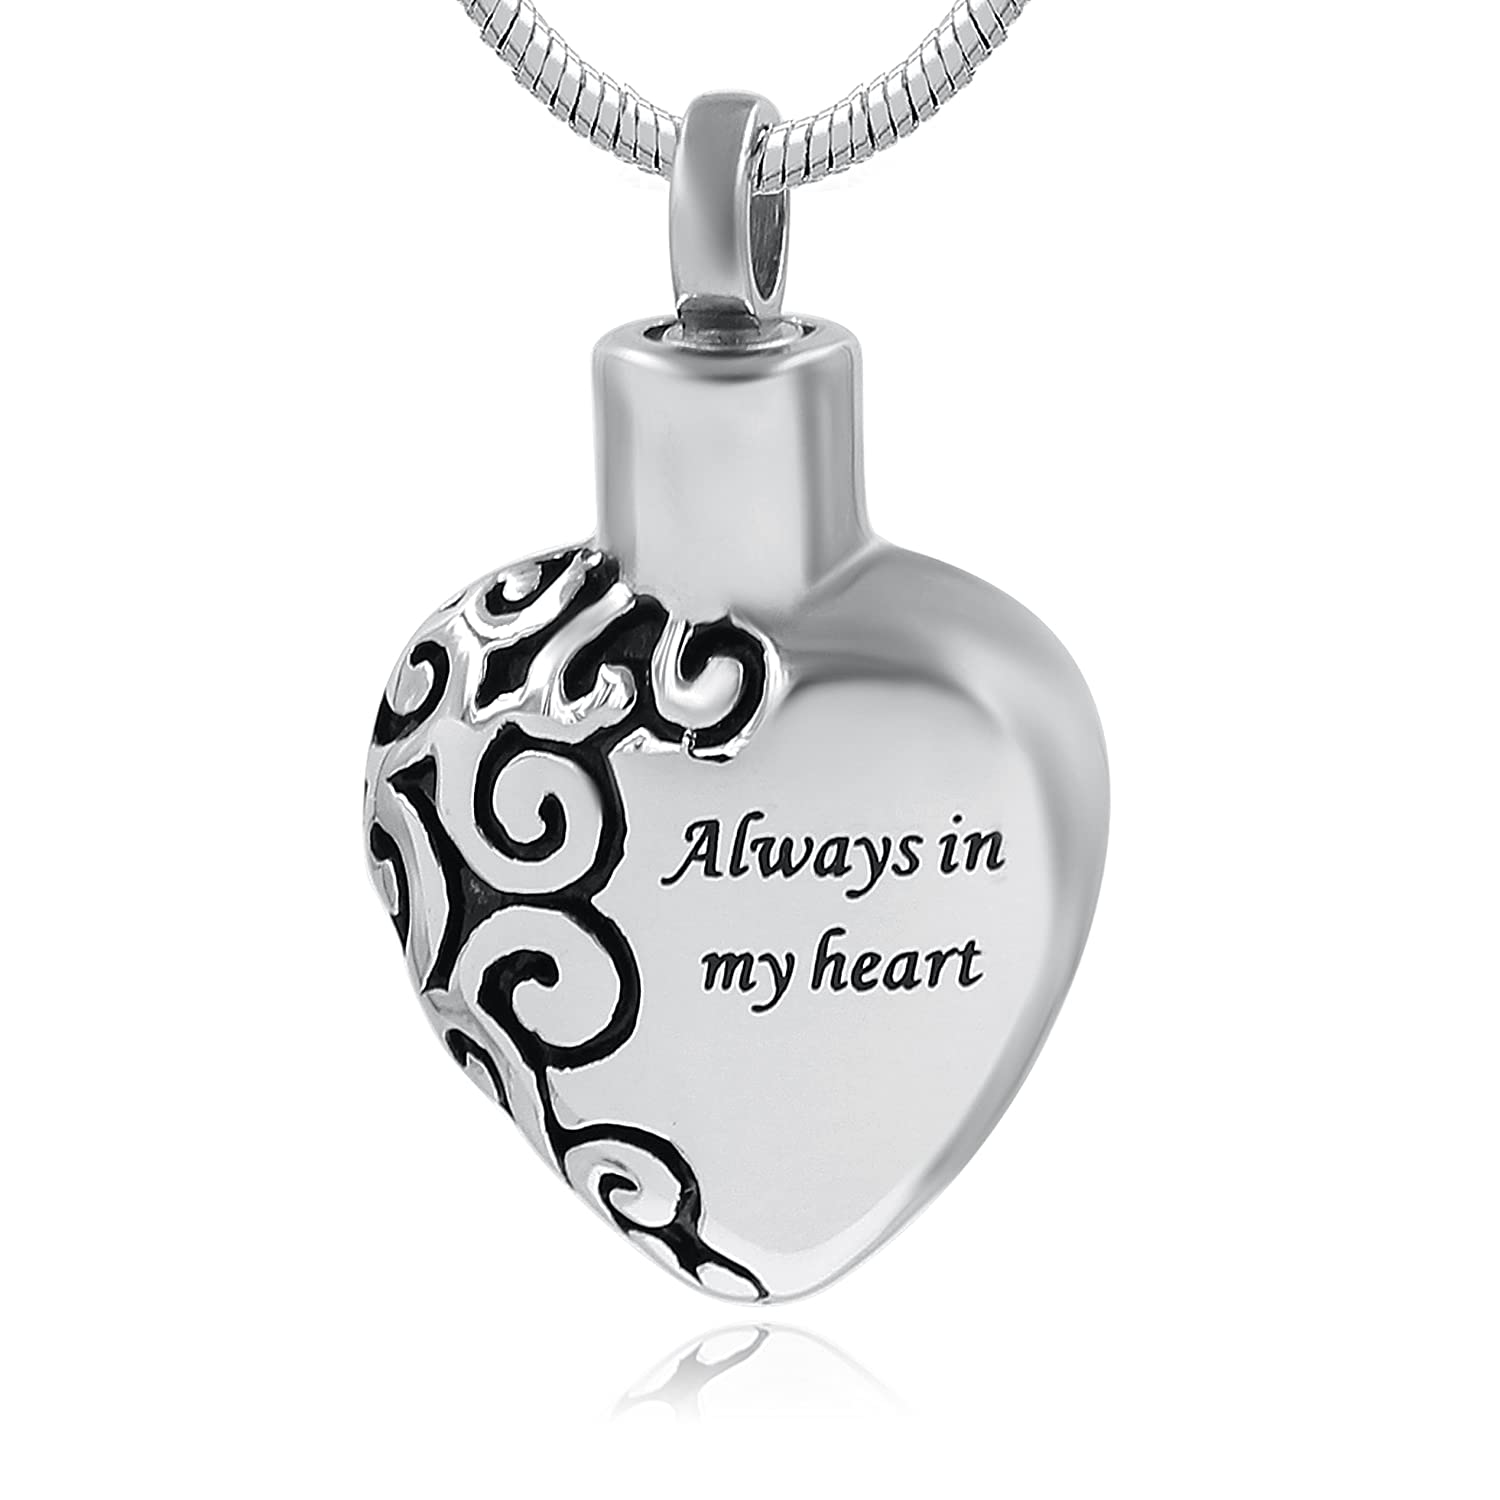 Hufan Always in My heart Cremation Urn Necklace for Ashes UK_B07719VWBH